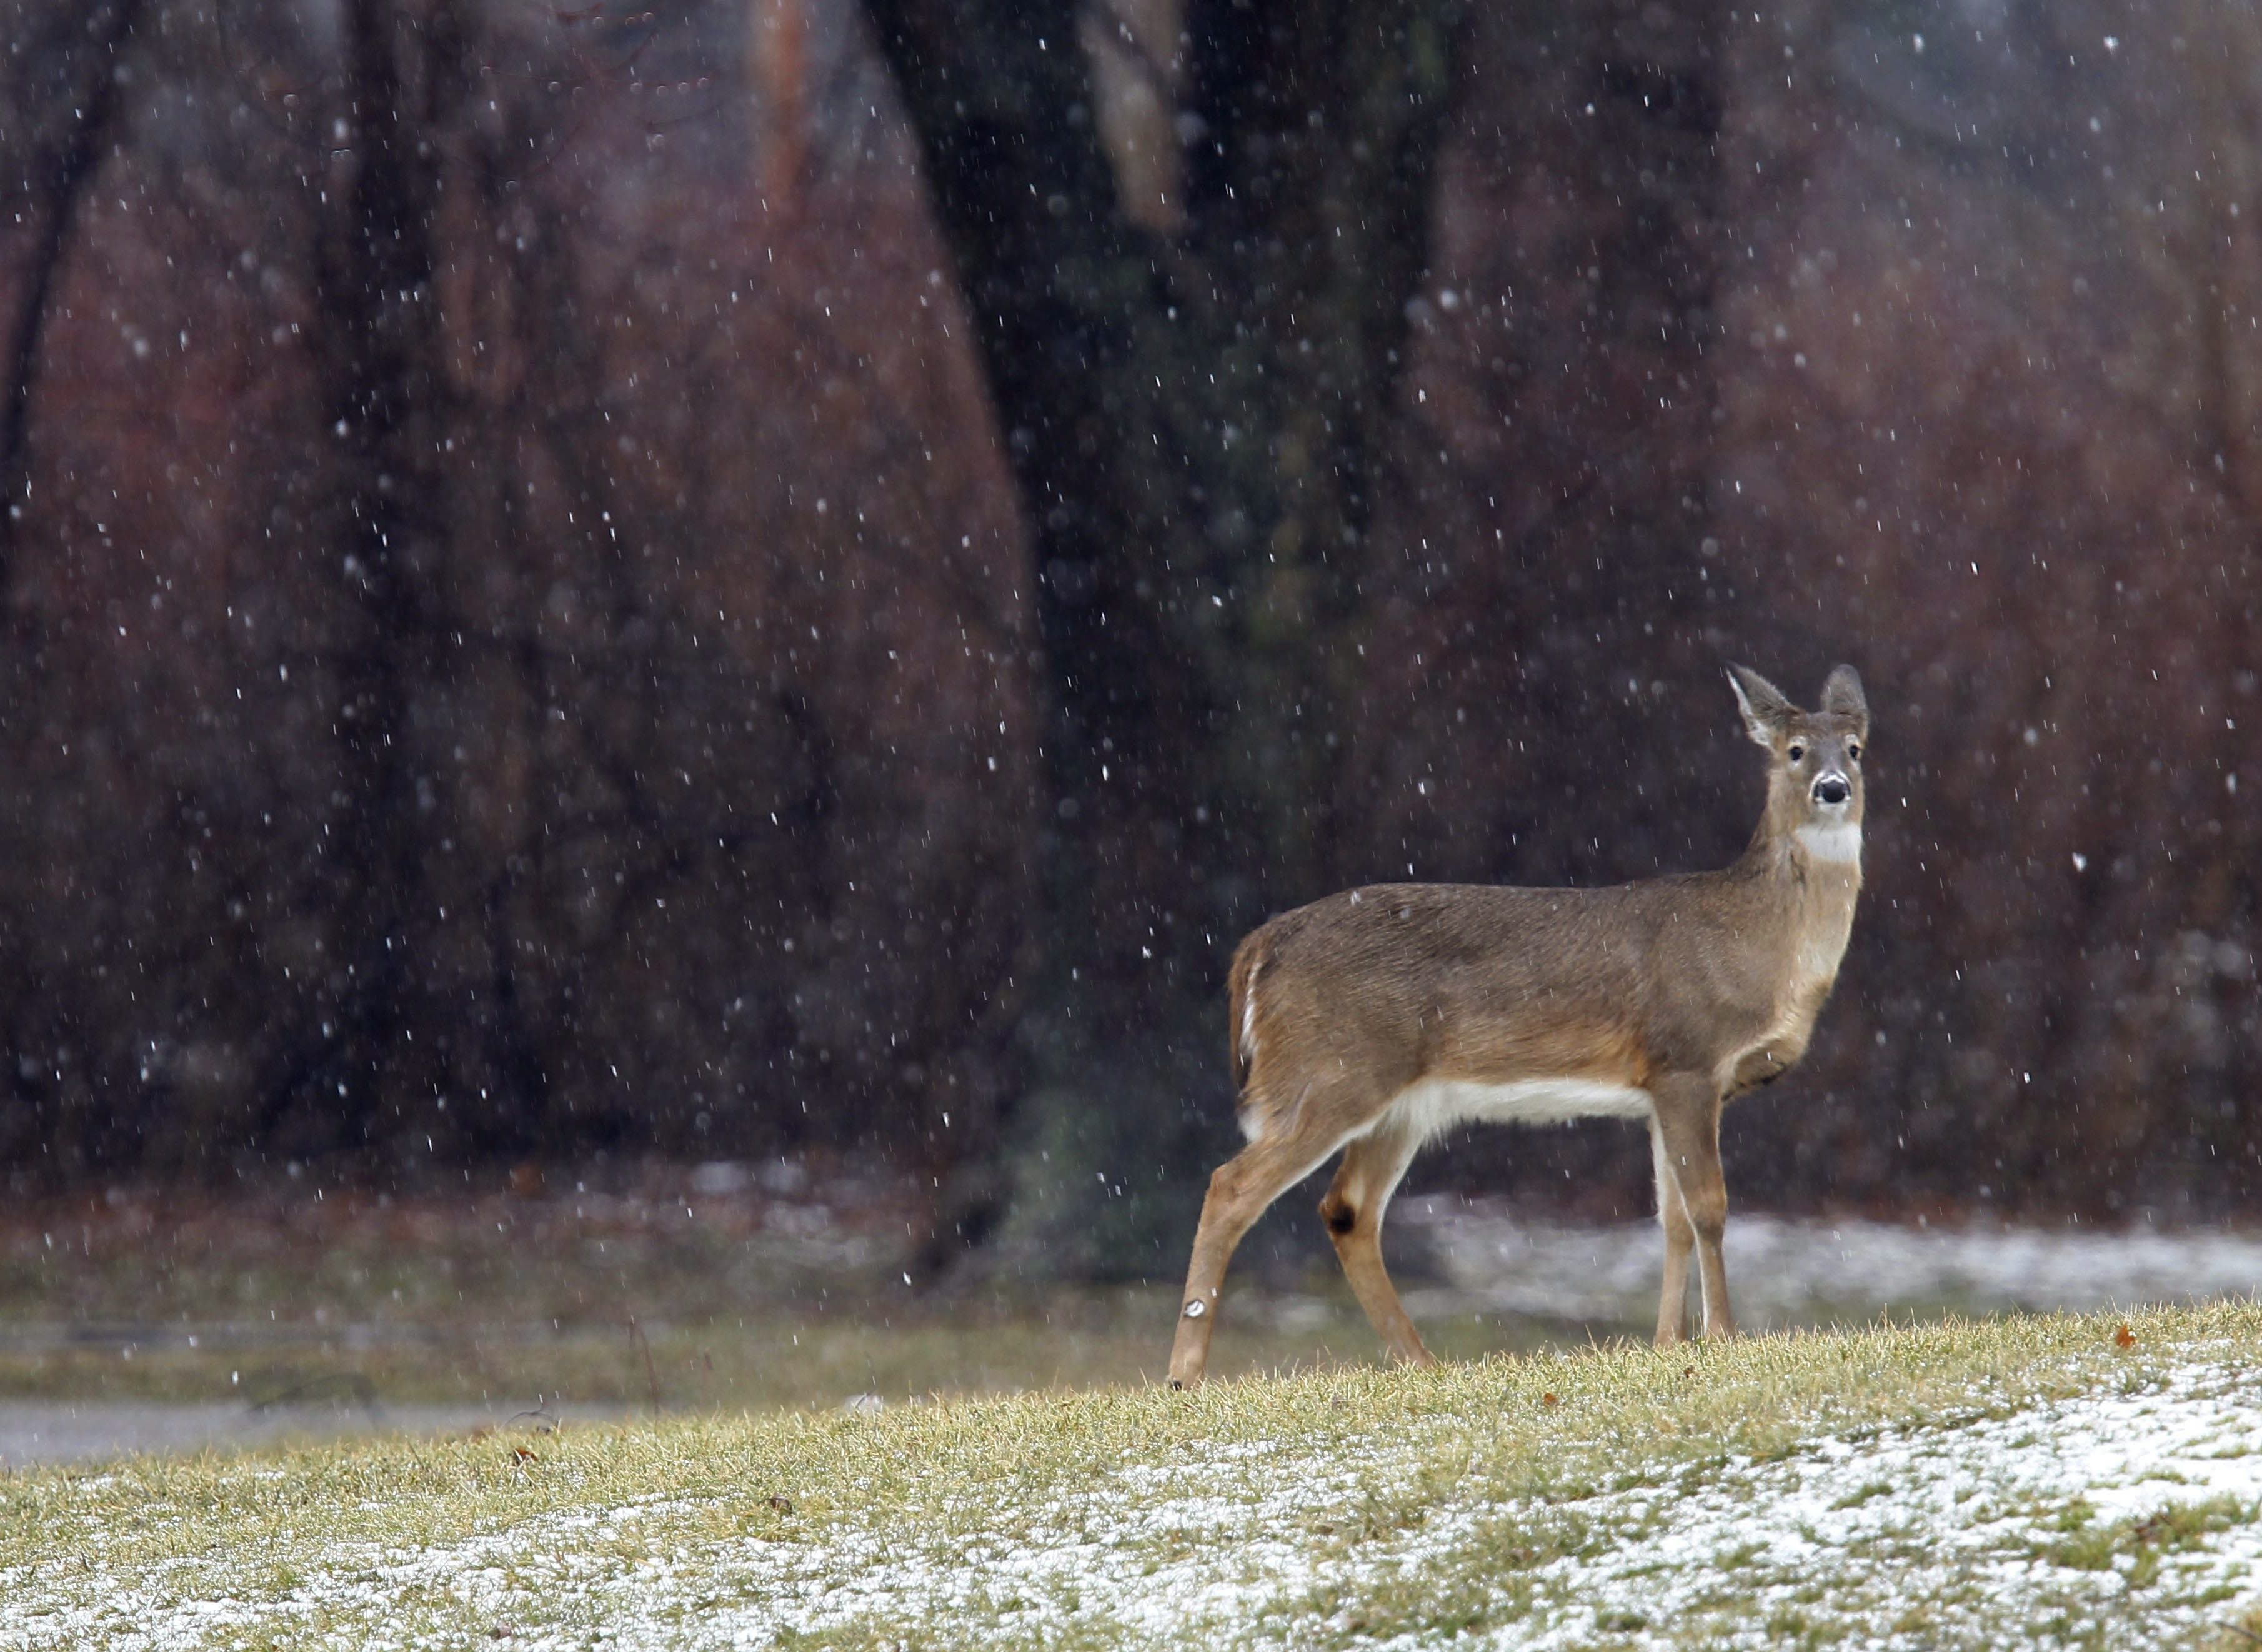 This deer likely has a taste for emerging tulips in a bulb bed.